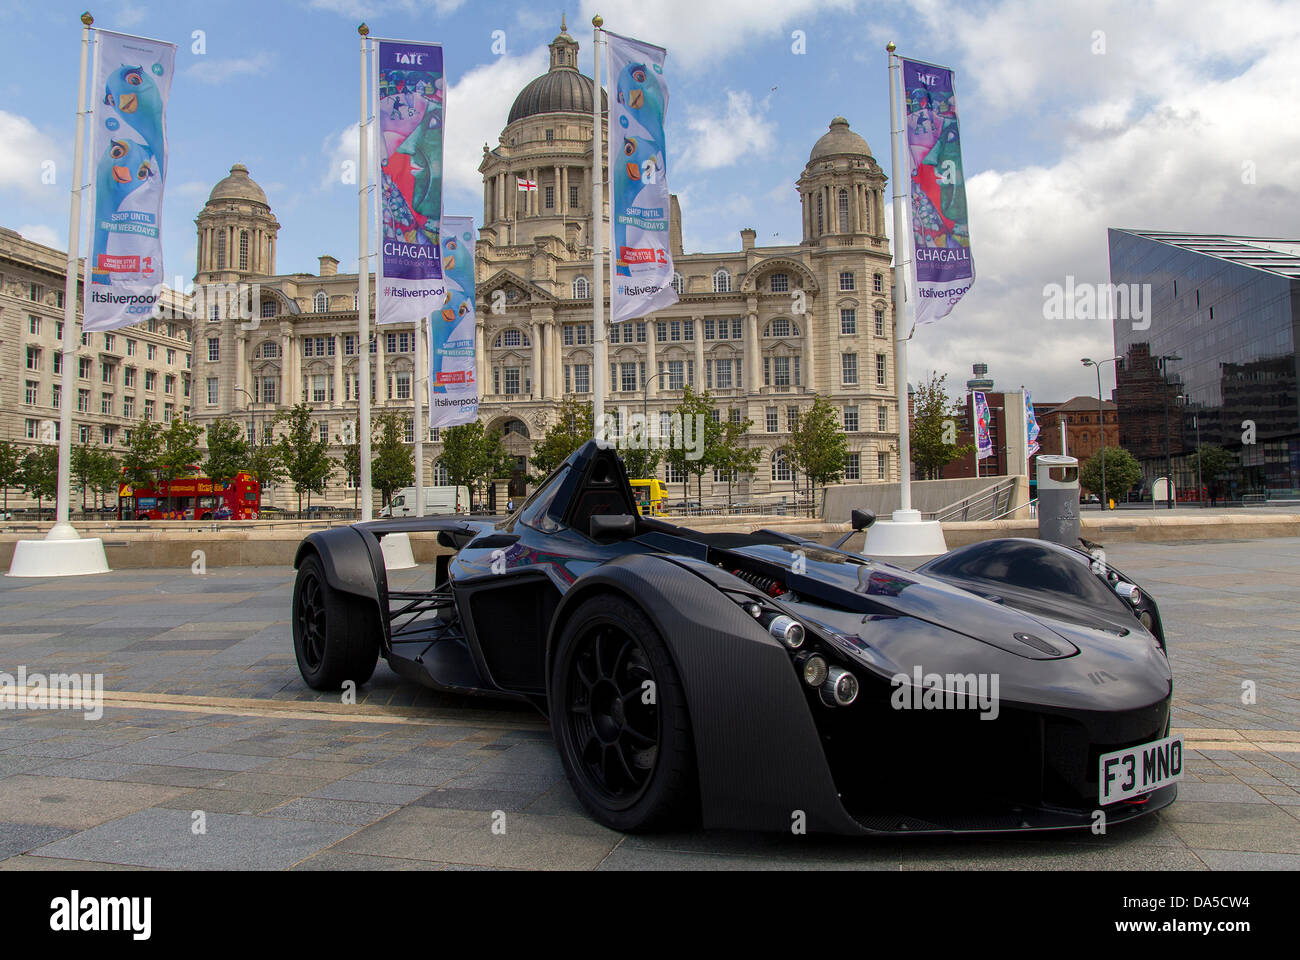 Liverpool, UK. 4th July 2013. The Mayor of Liverpool has completed a deal with motoring pioneers Briggs Automotive - Stock Image